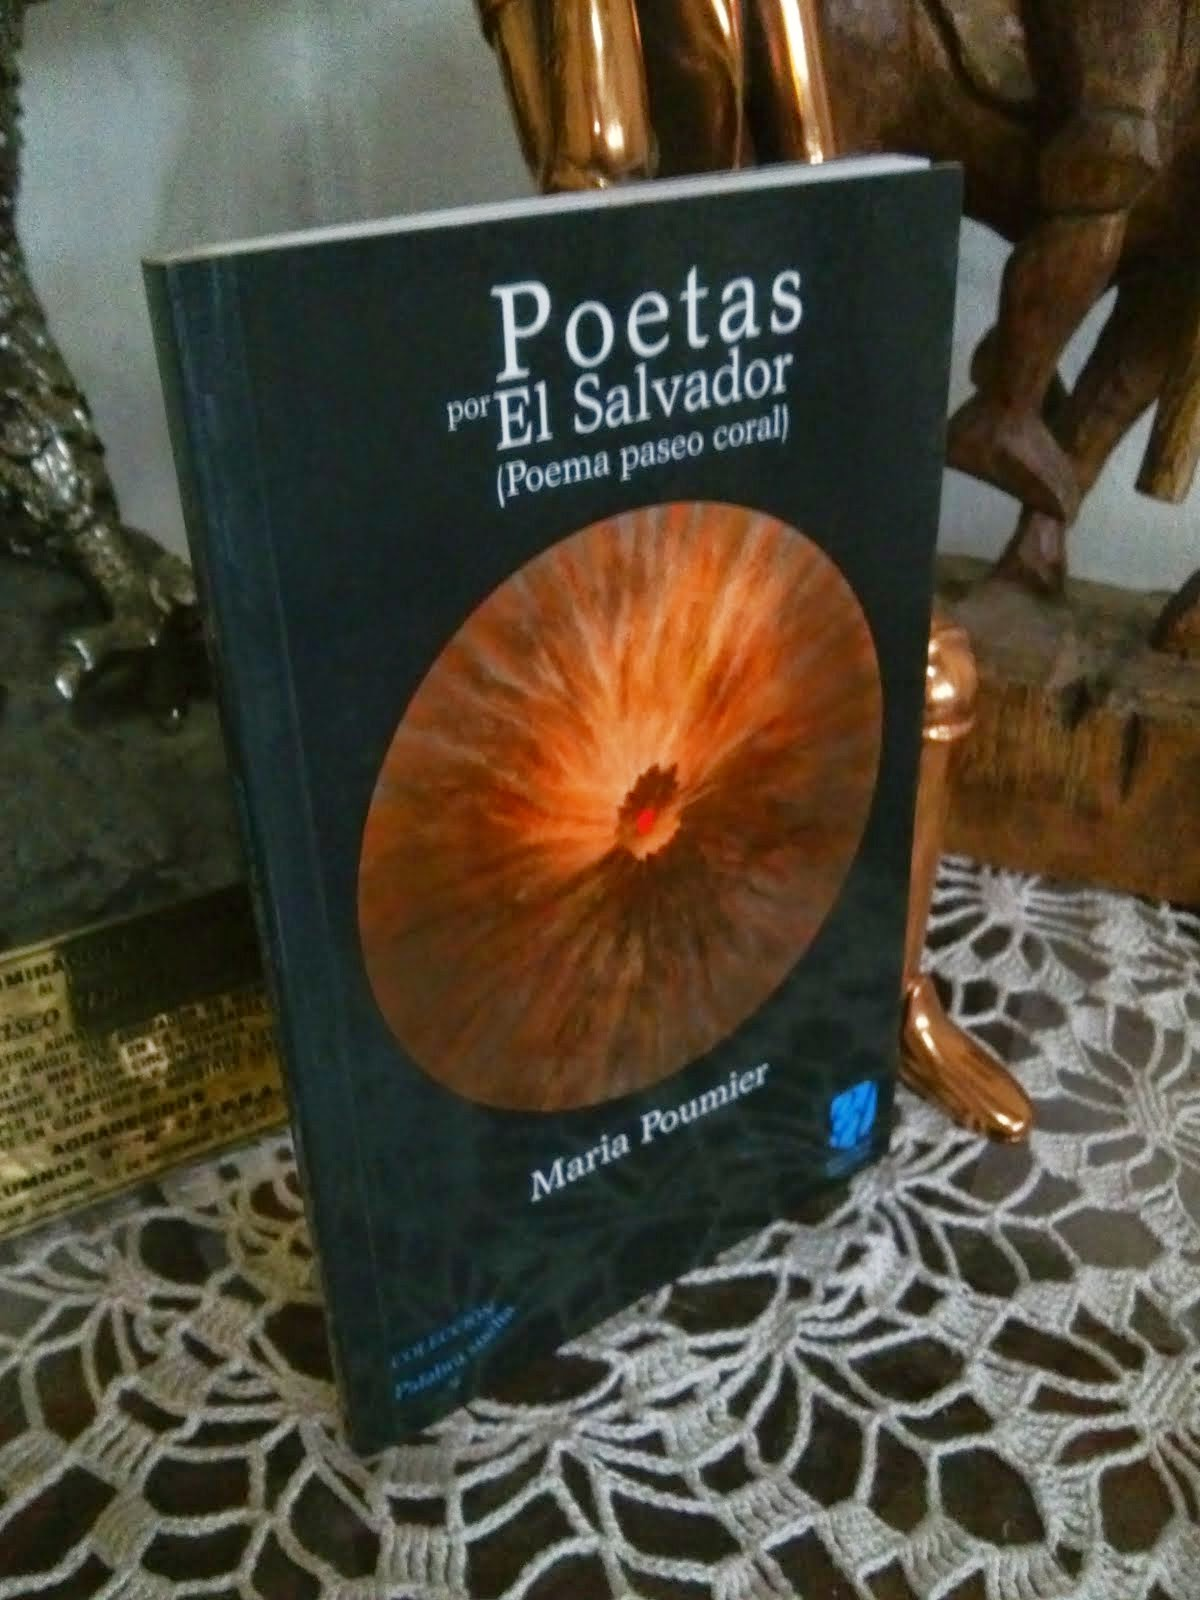 POETAS POR EL SALVADOR DE MARÍA POUMIER